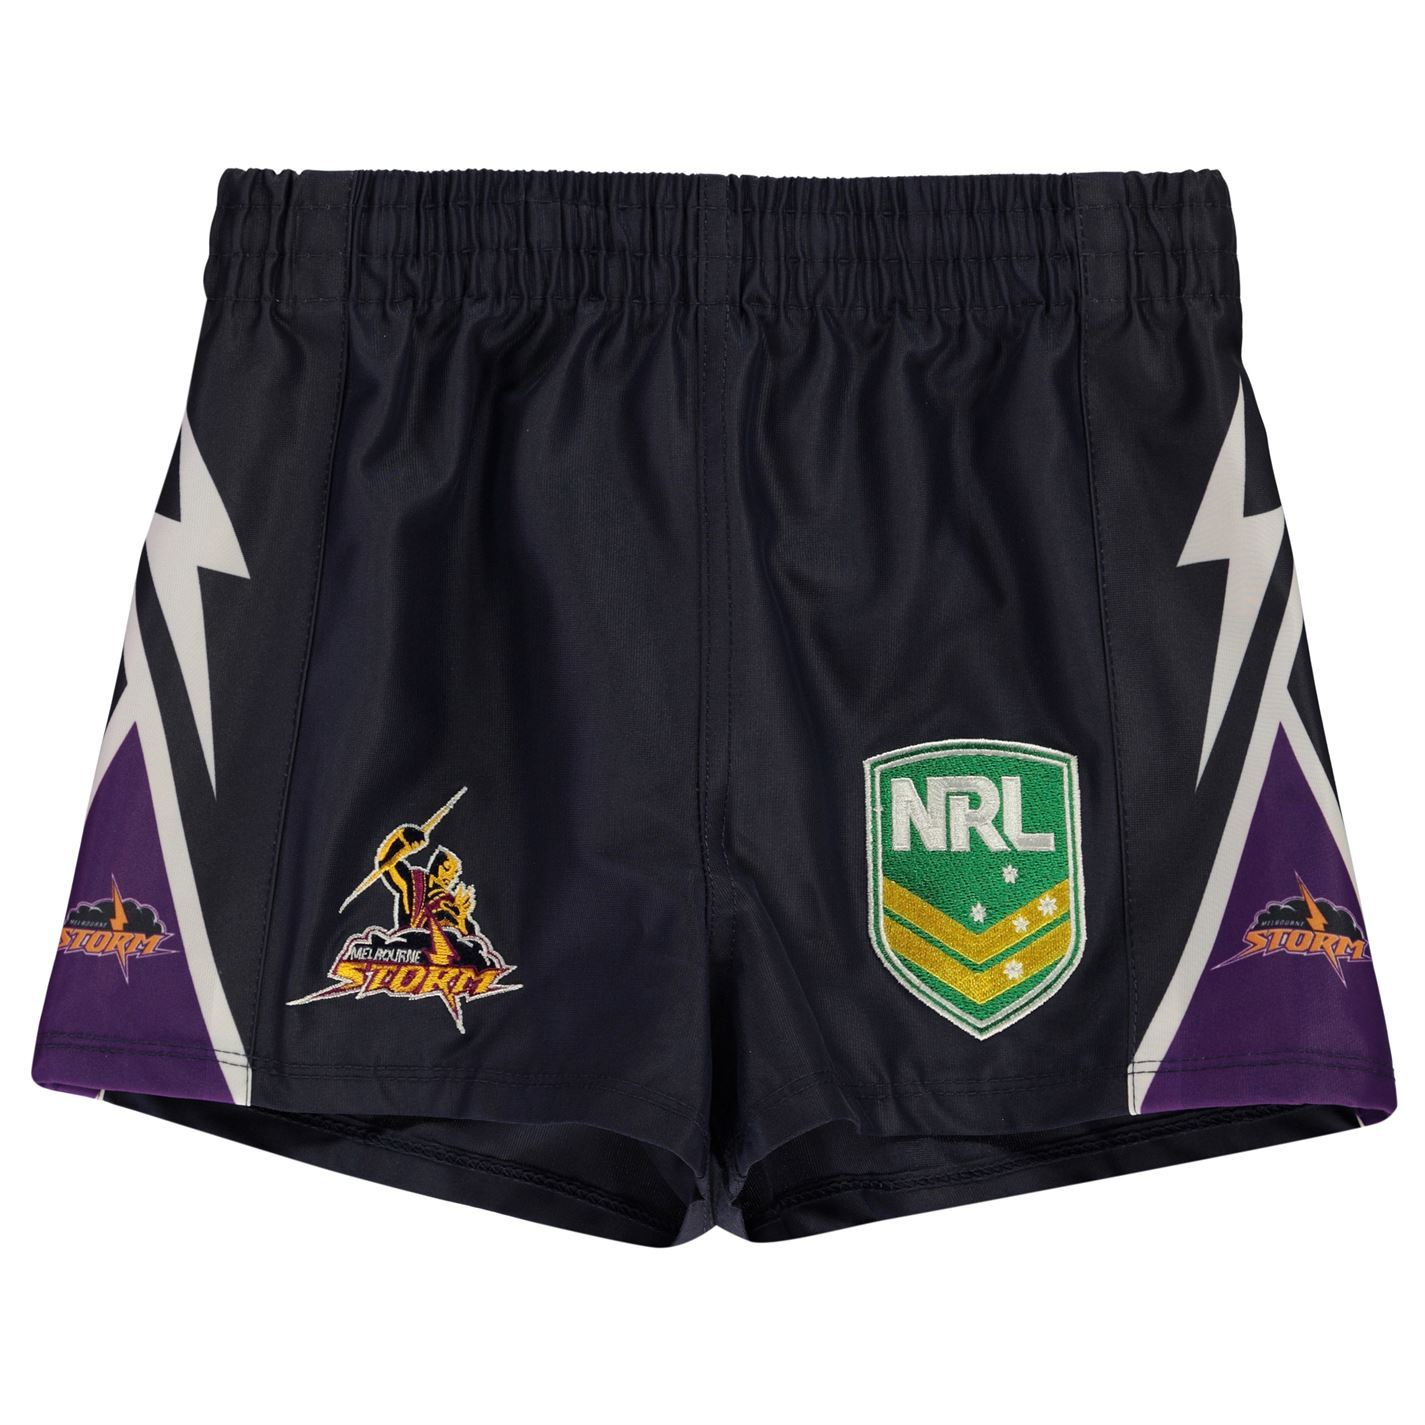 NRL-Supporter-Shorts-Juniors-Rugby-League-Storm-Bulldog-Sea-Eagles-Eels-Roosters thumbnail 7